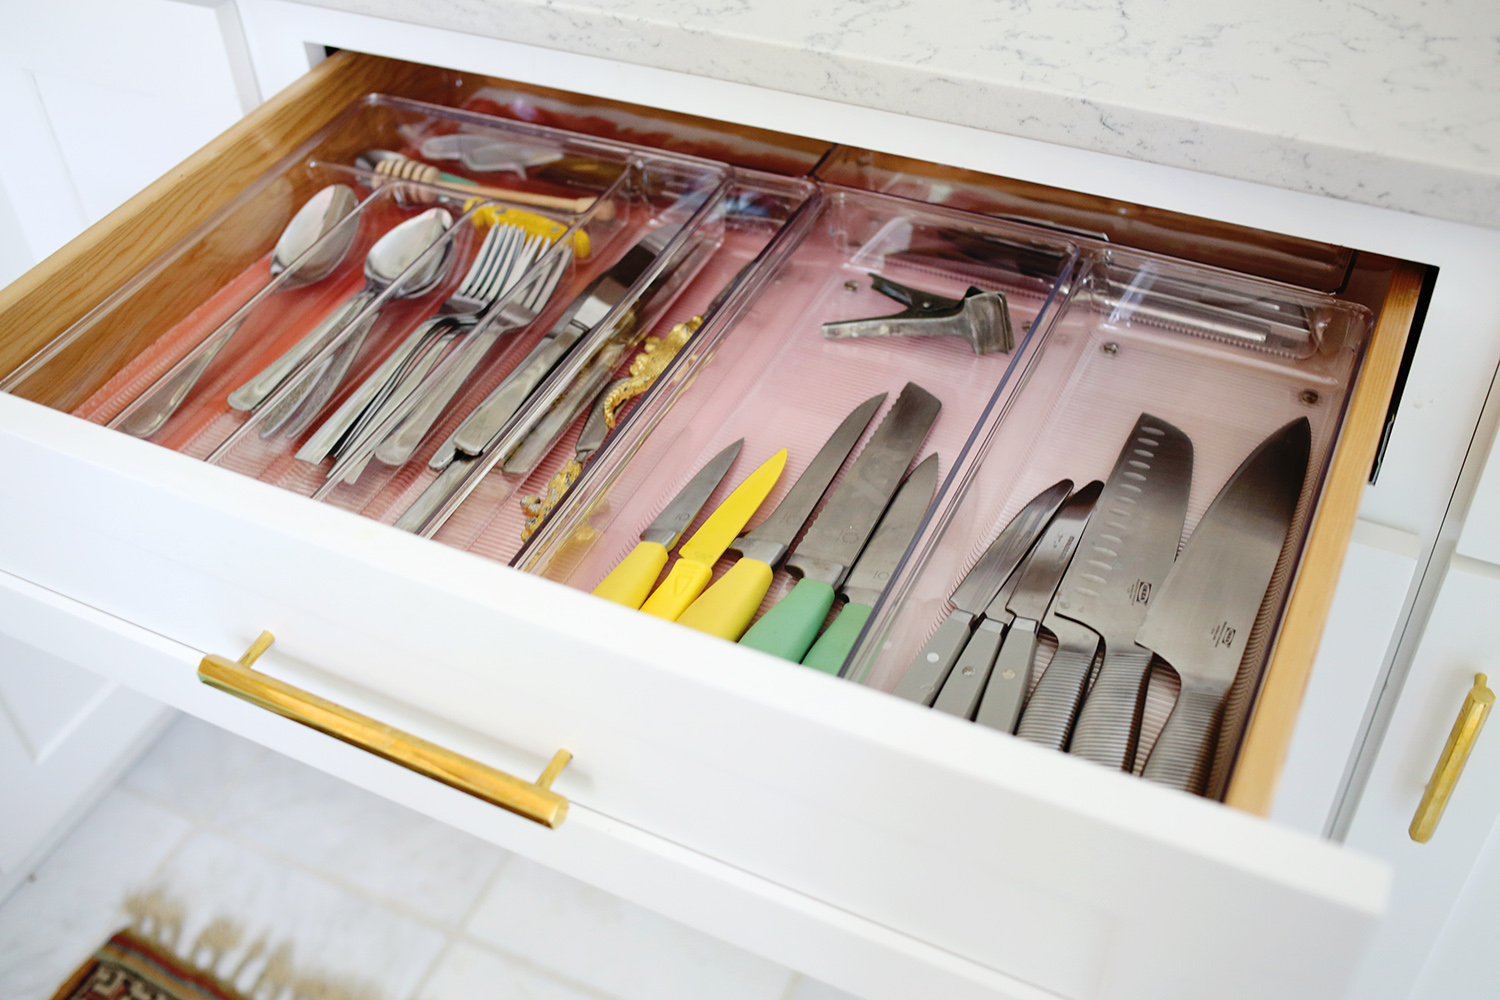 Containers for organization